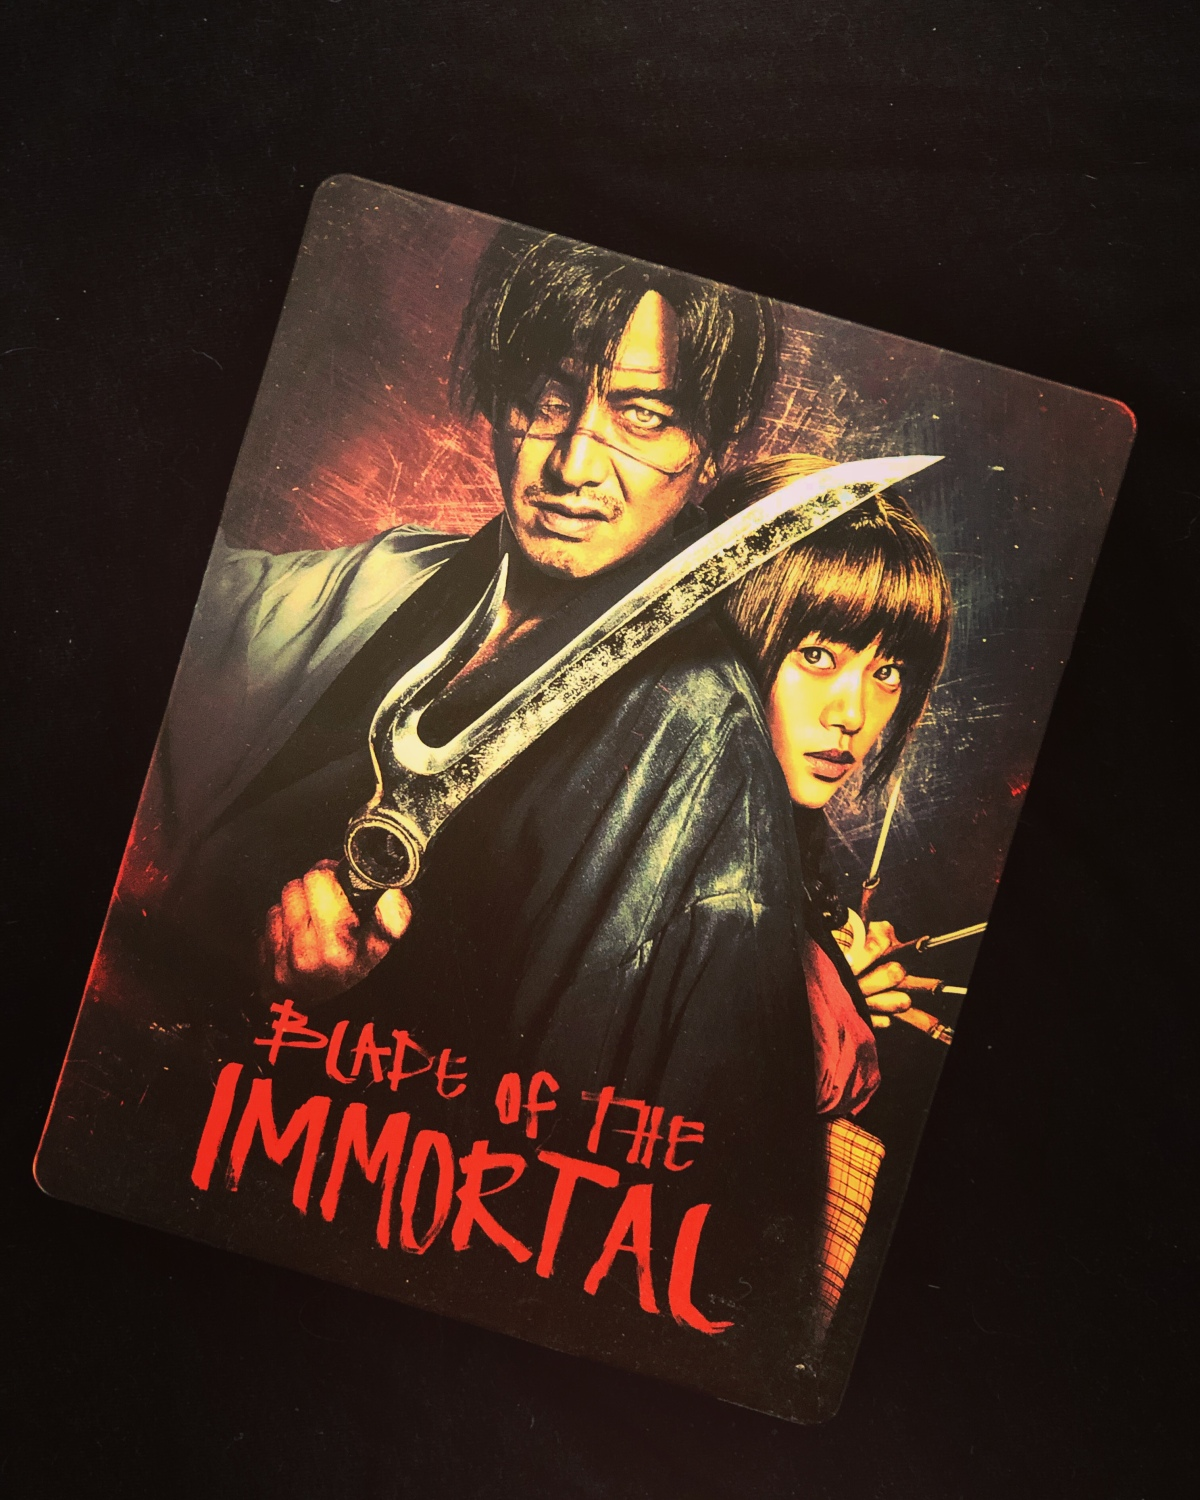 Blade of the Immortal (Film) |Review